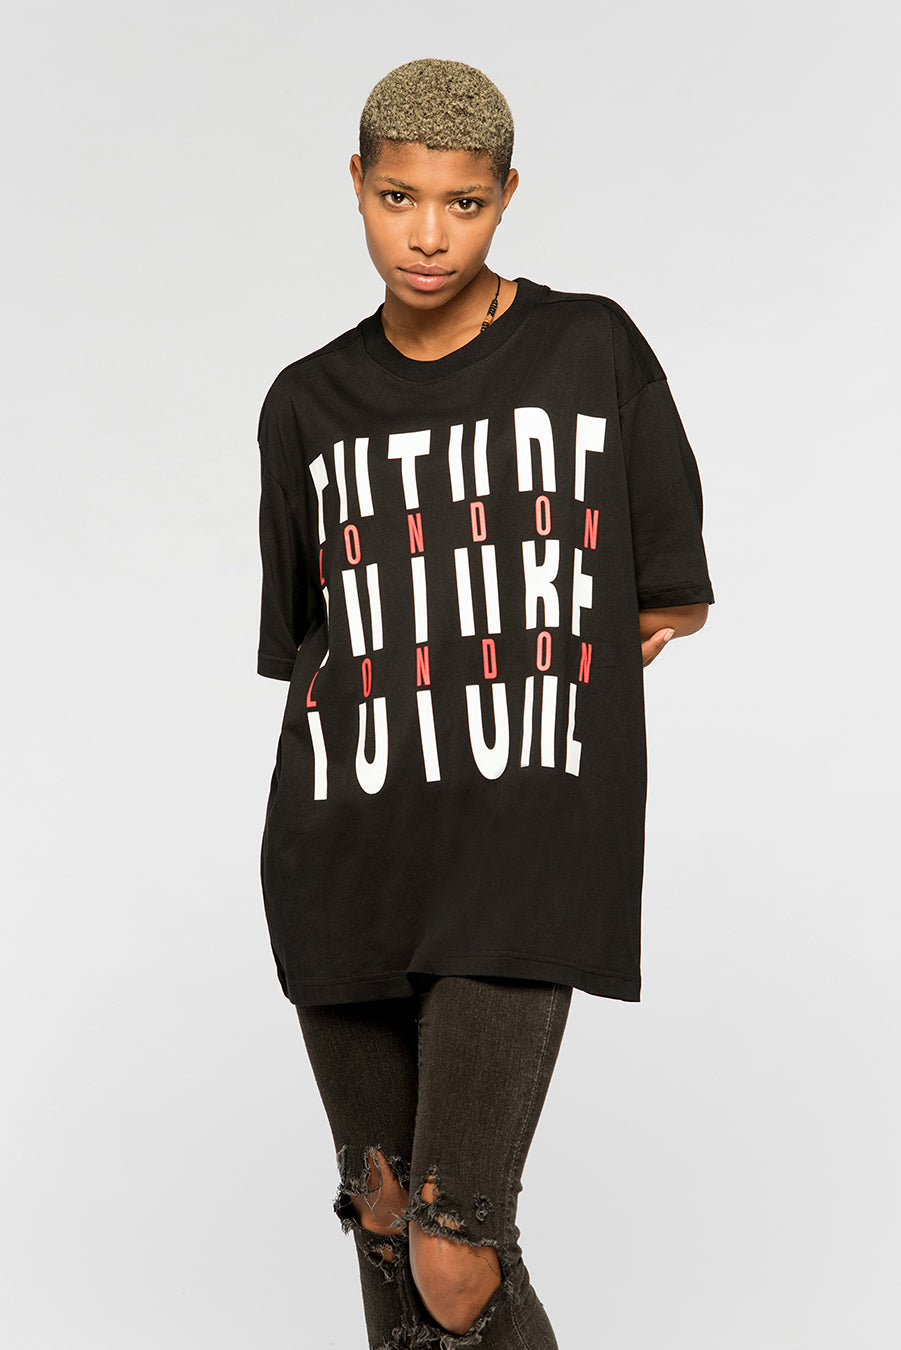 new_future_london_fracture_logo_t_shirt_black_-1.jpg